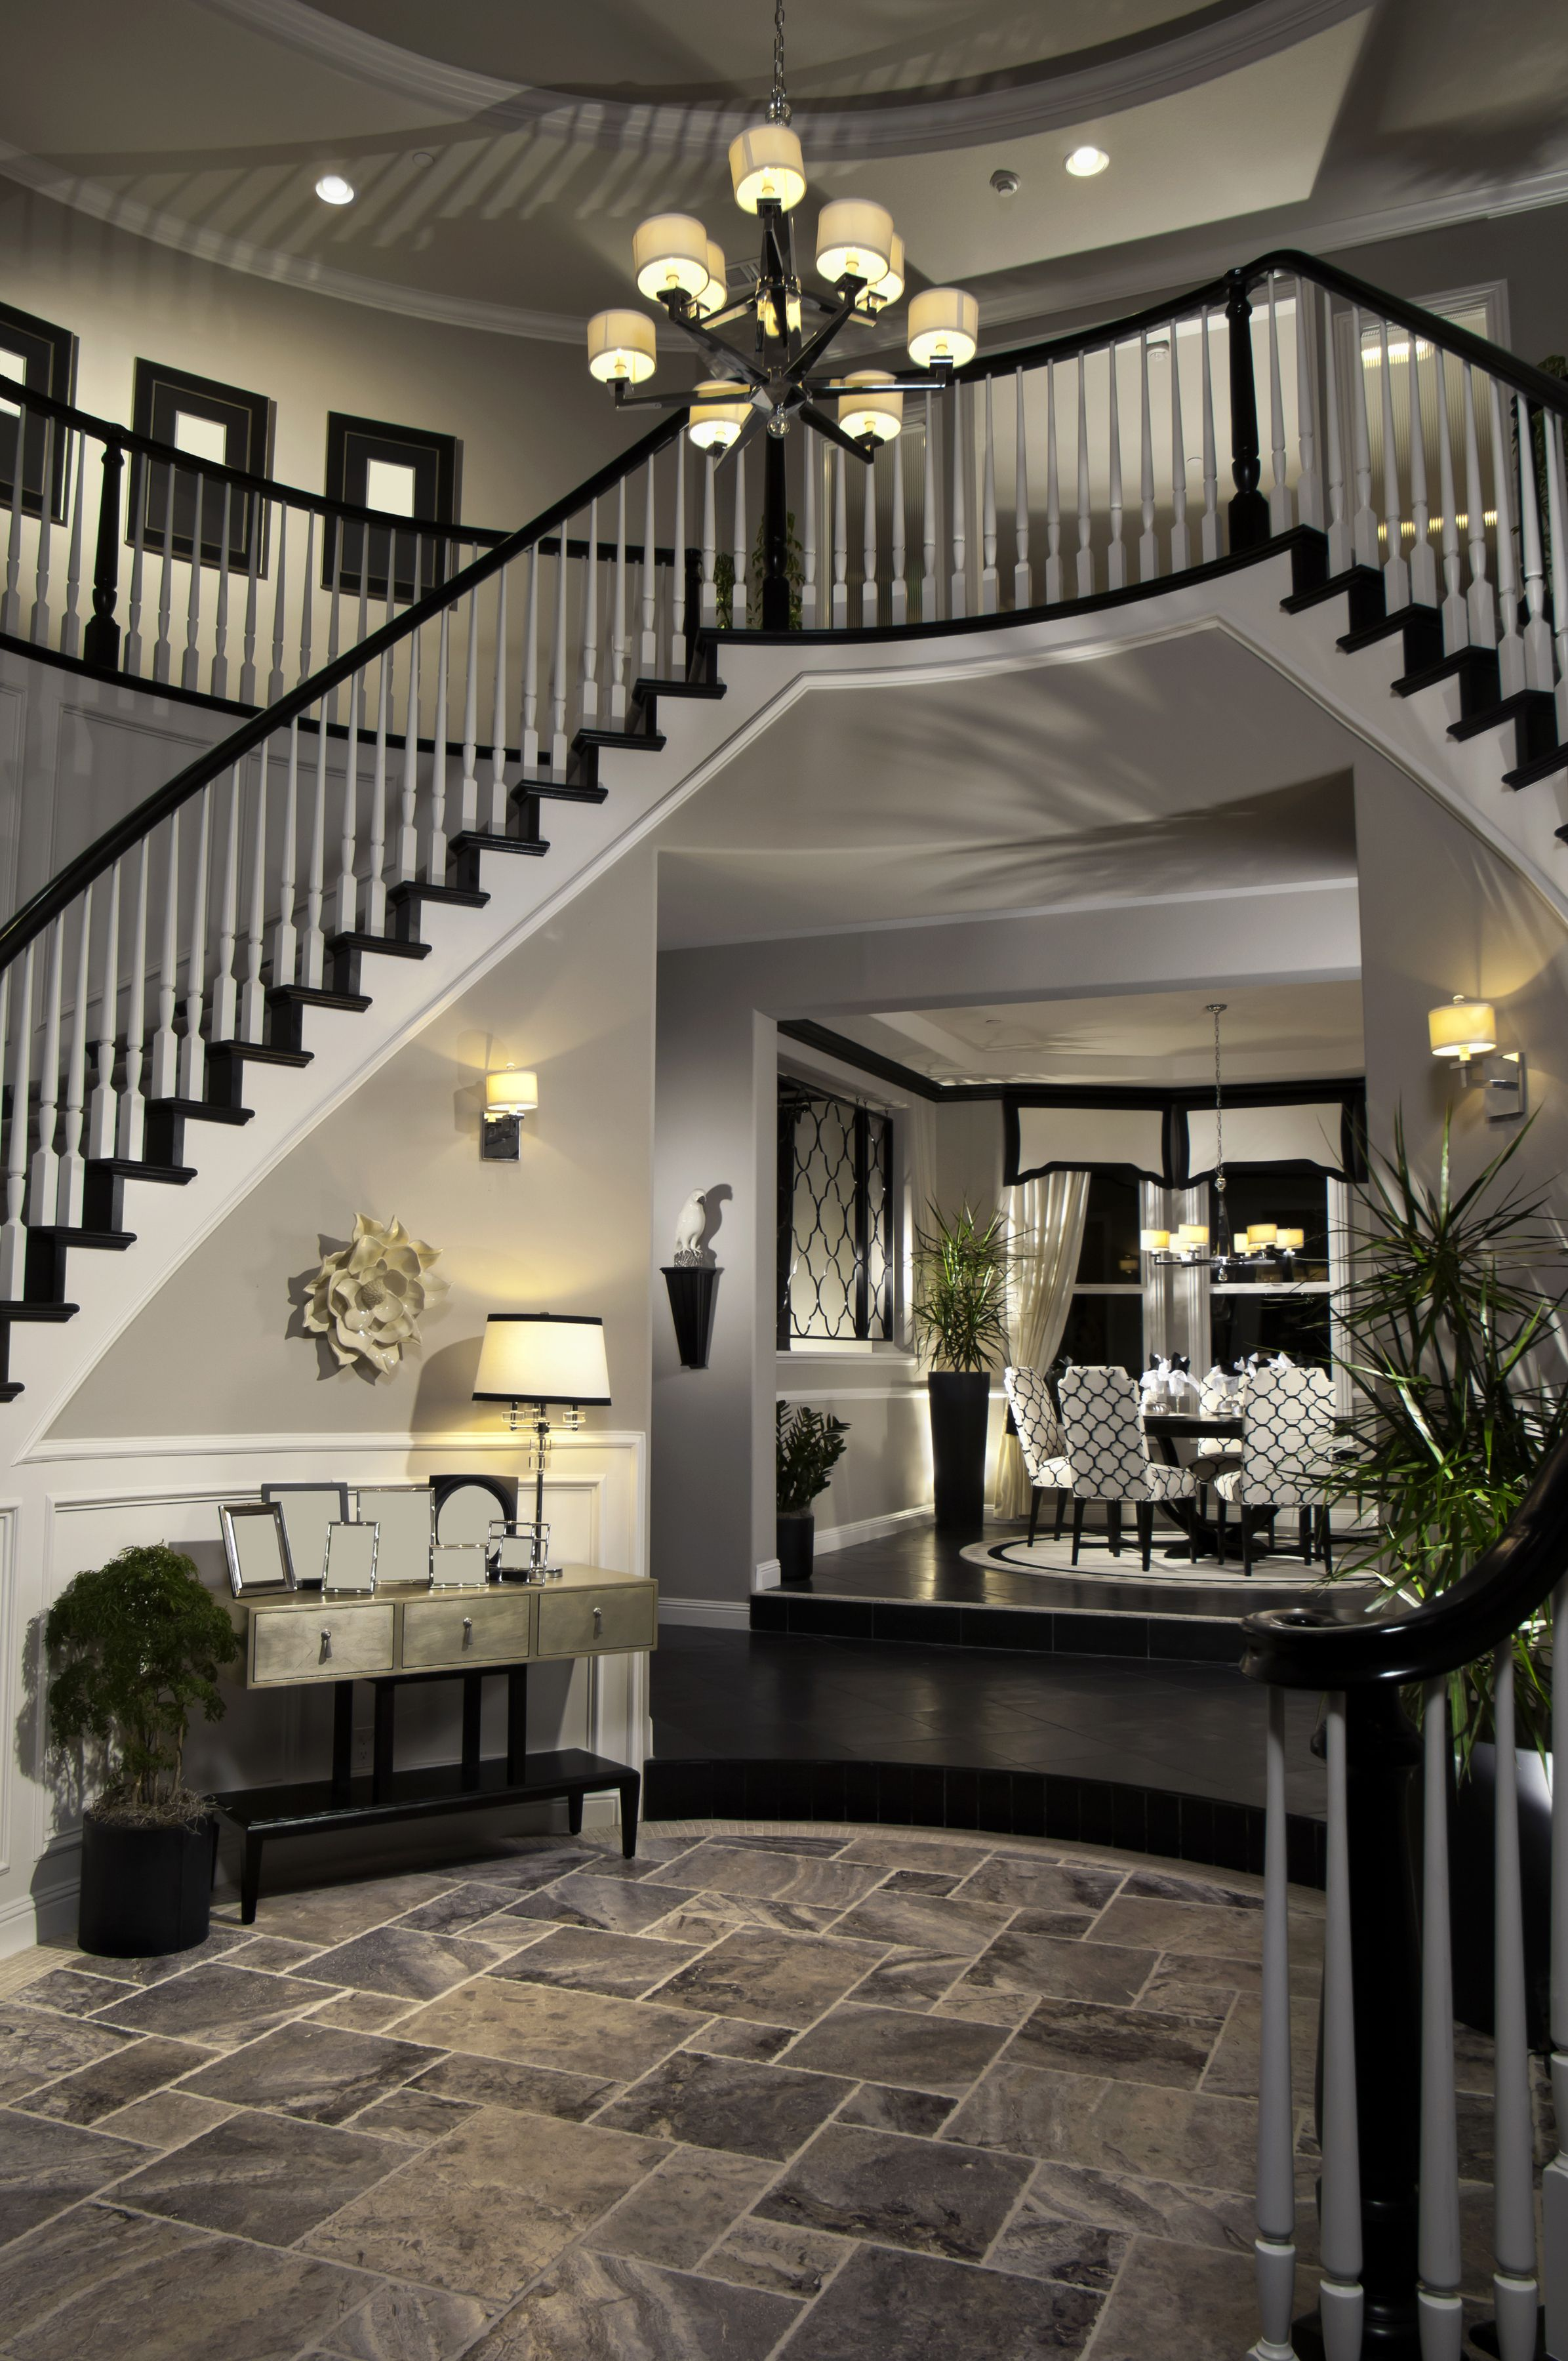 36 Different Types of Home Entries (Foyers, Mudrooms, etc.) | Grey ...